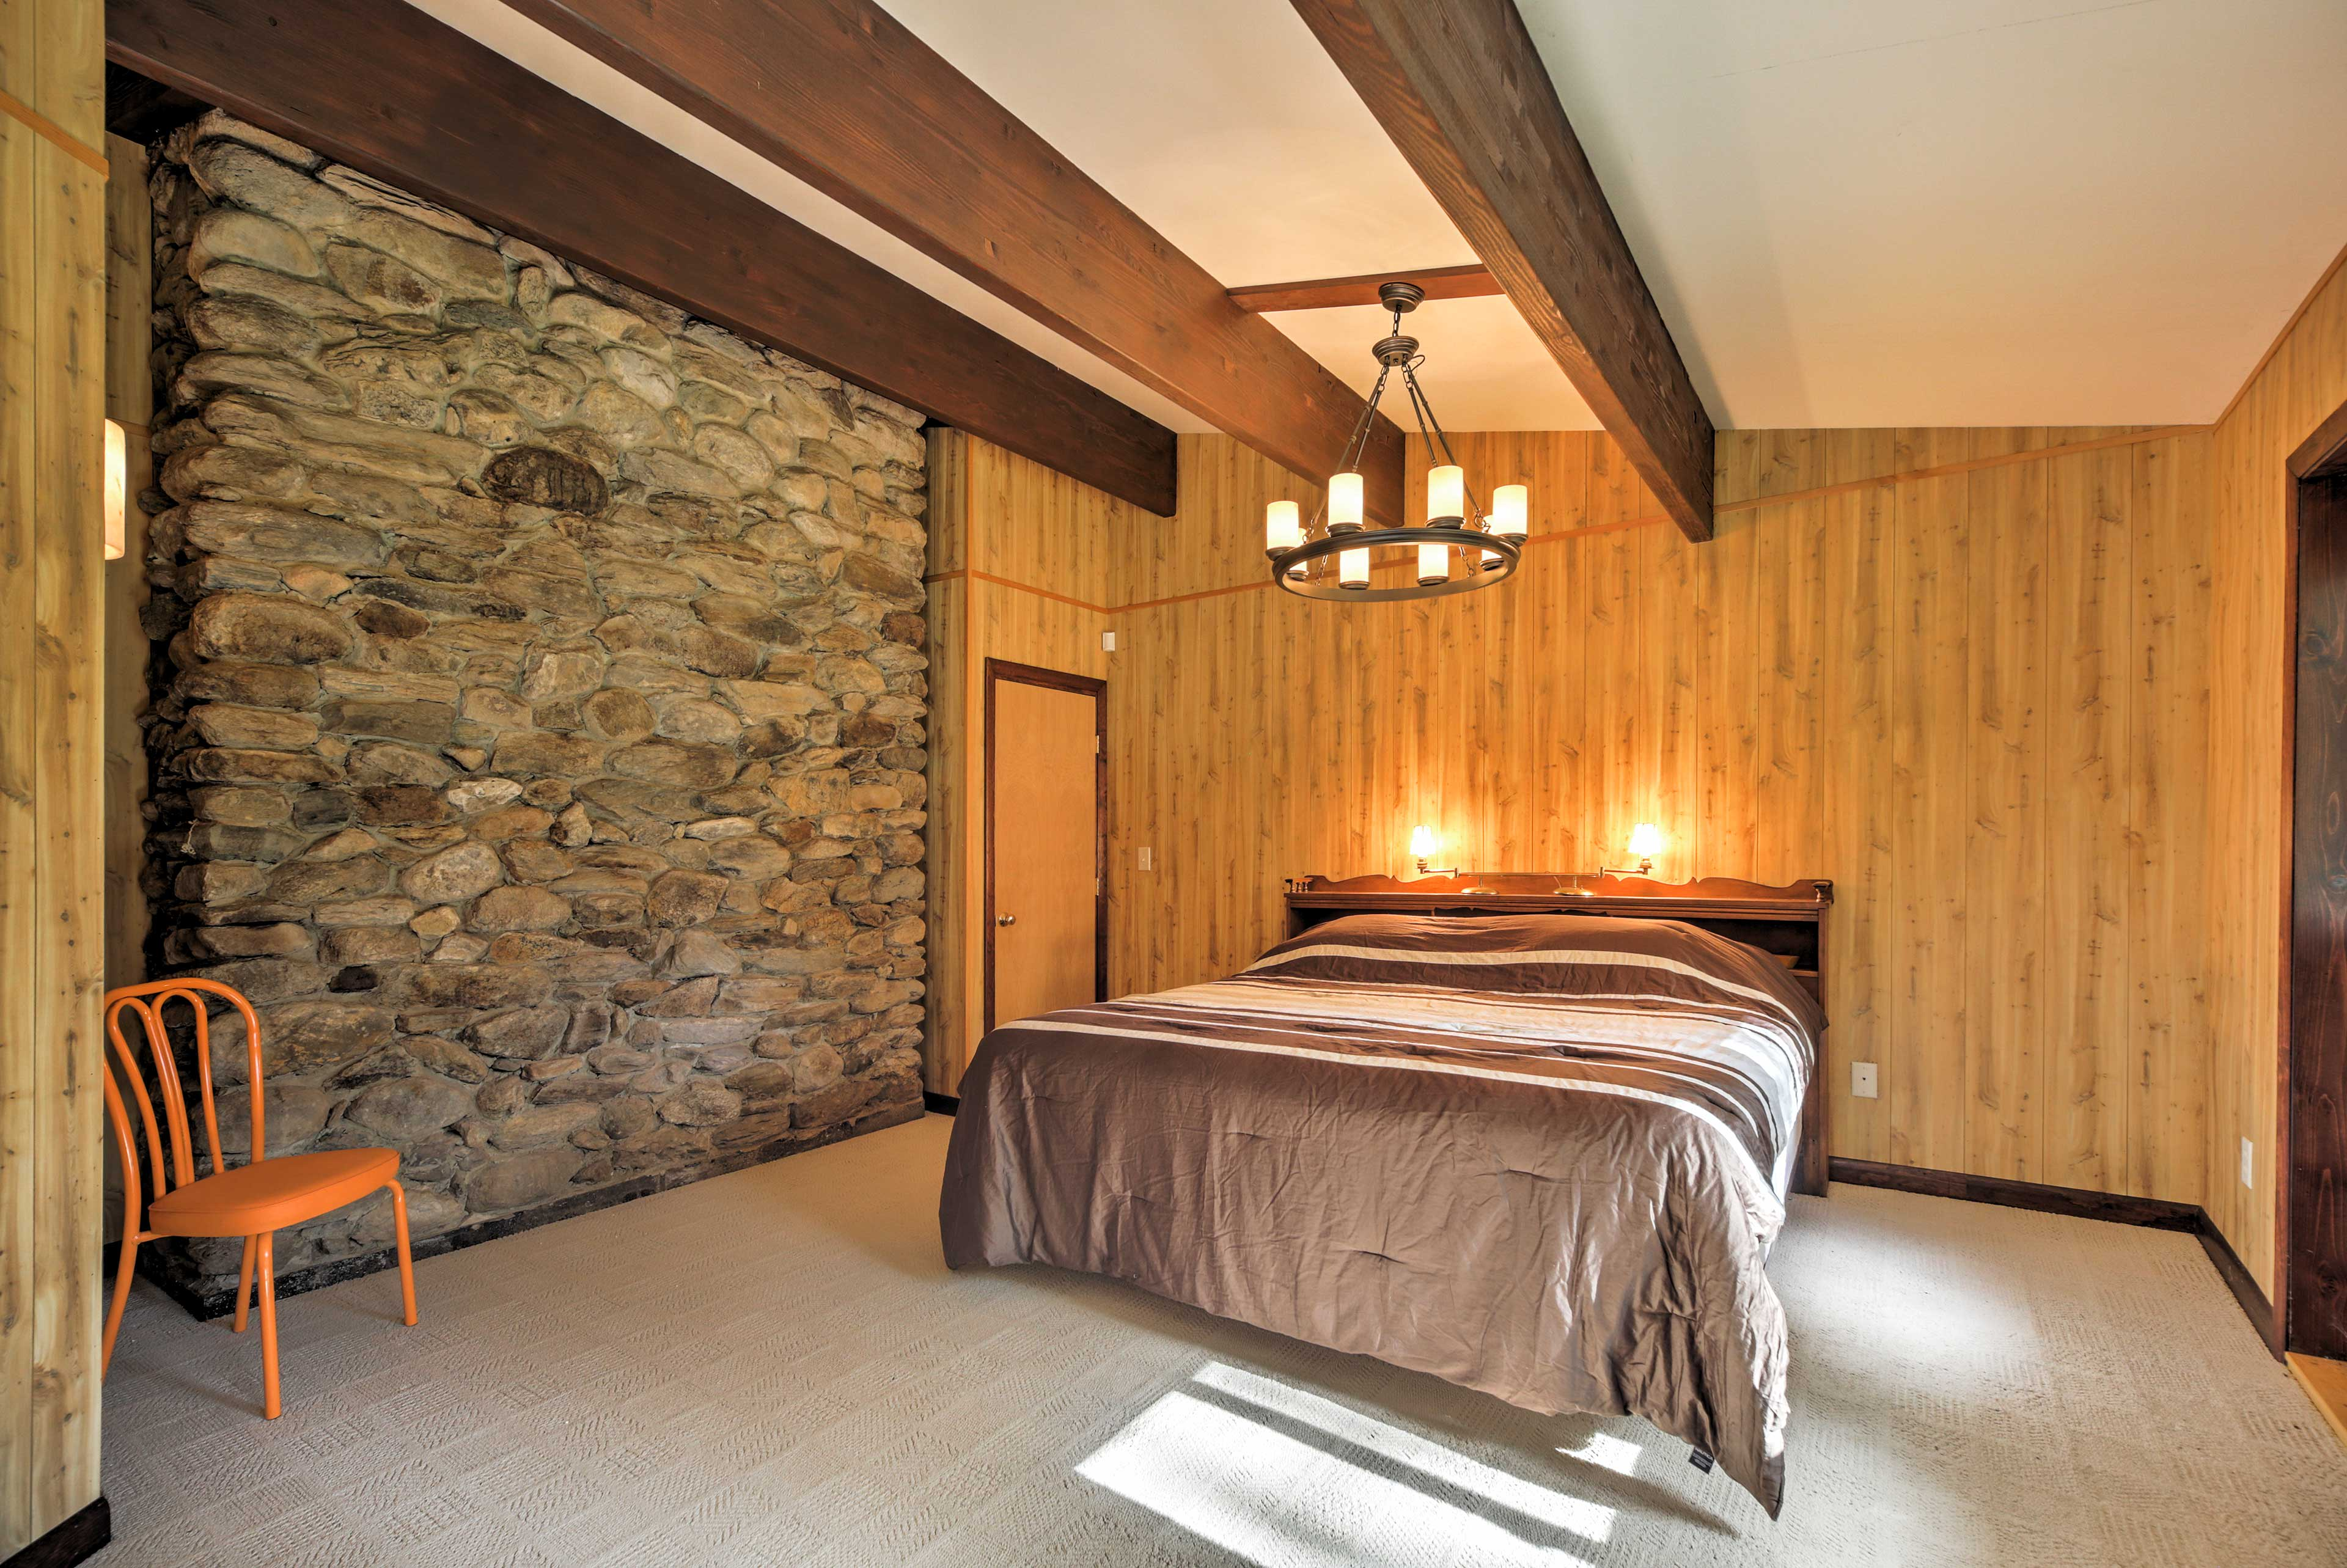 Relax in this king-sized bed and admire the river rock and exposed beam accents.